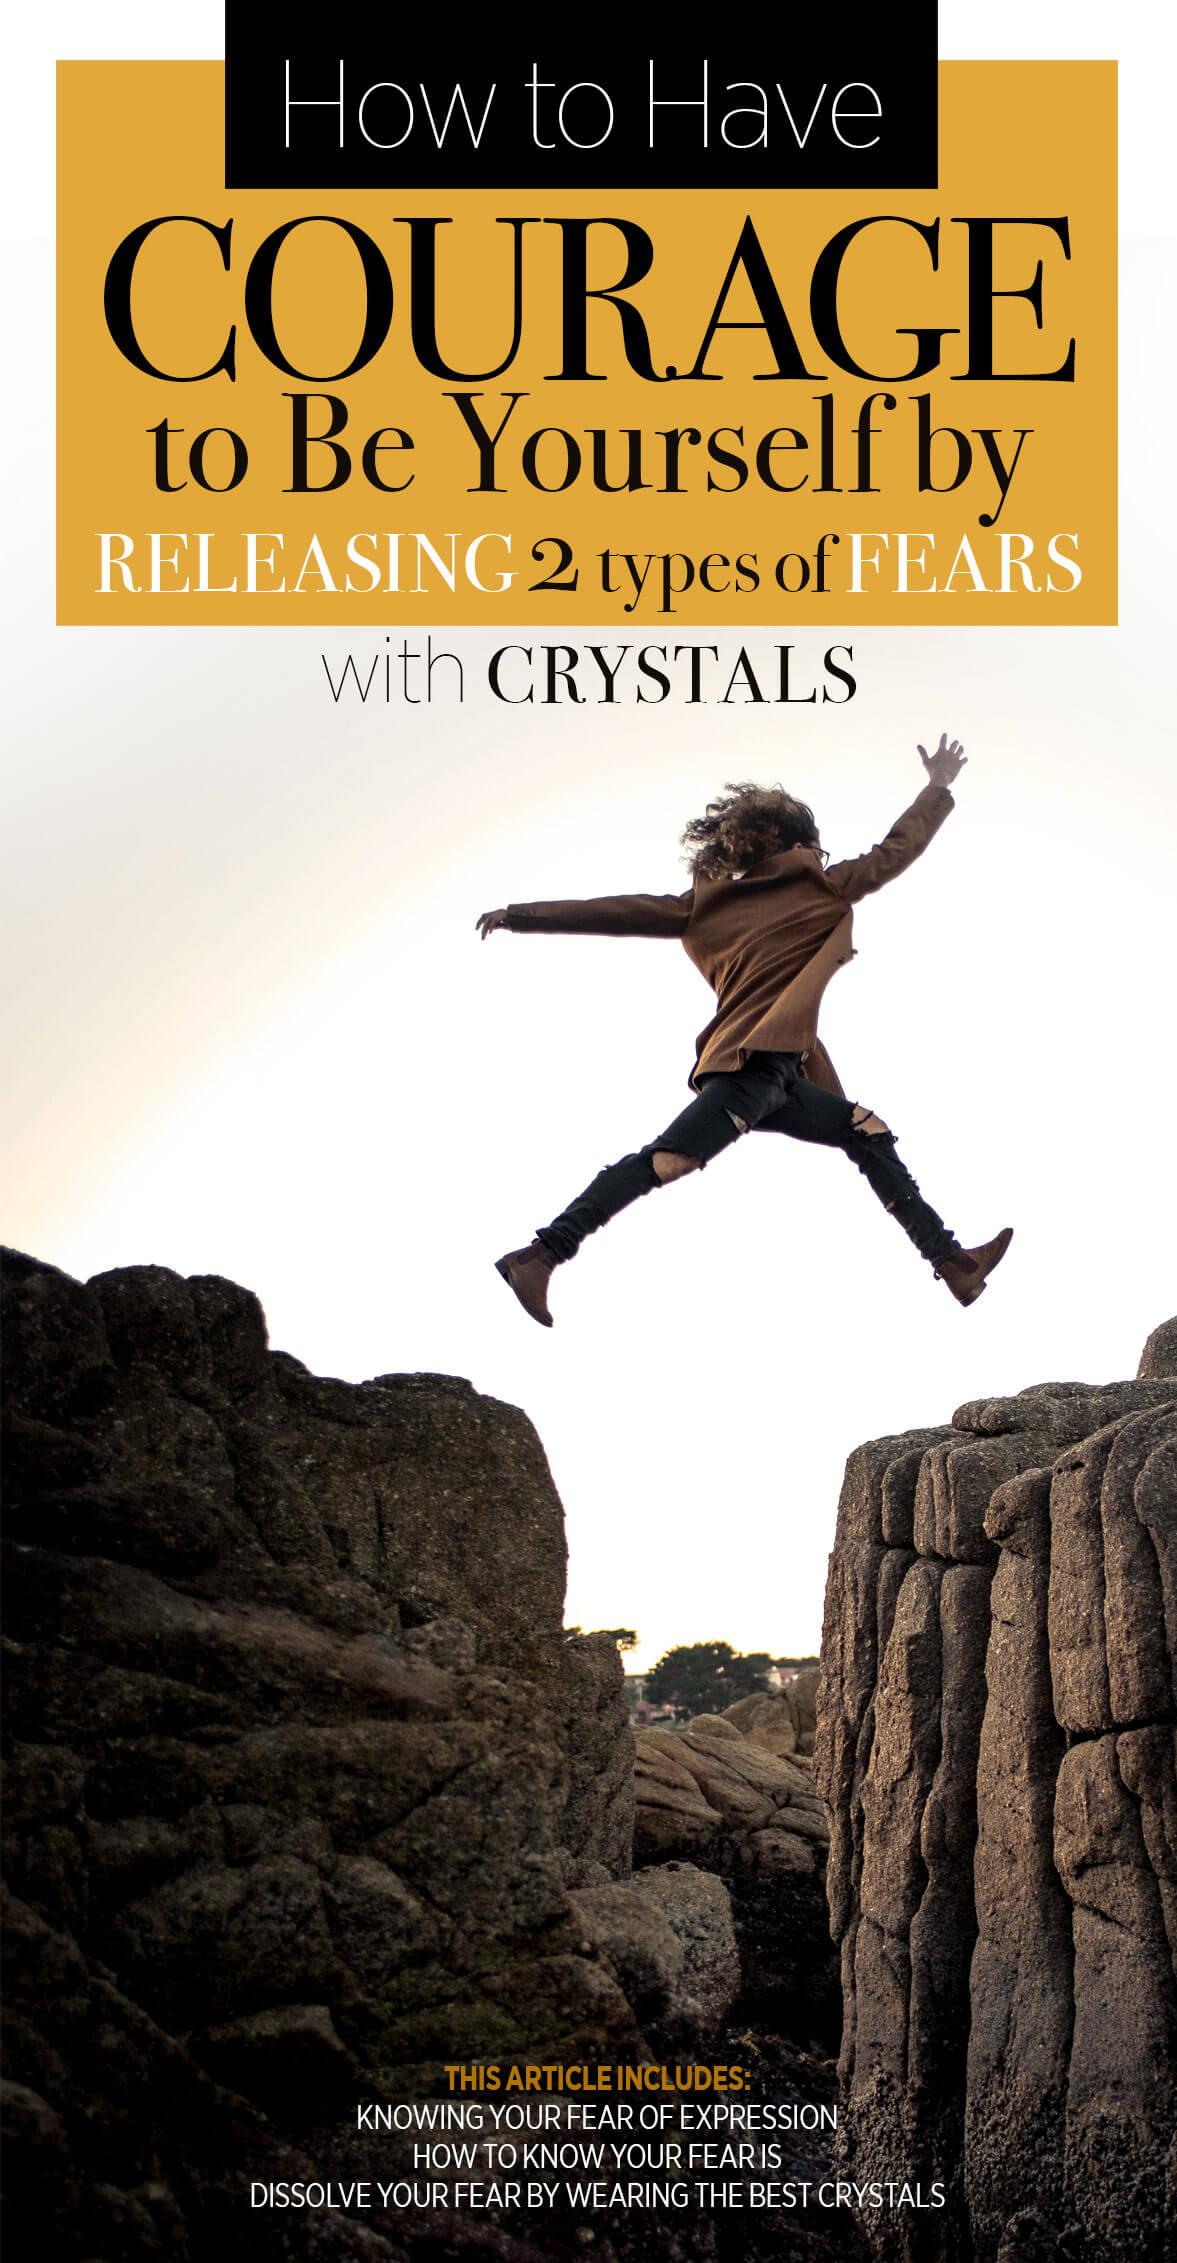 Have Courage to Be Yourself by Releasing Fears with Crystals